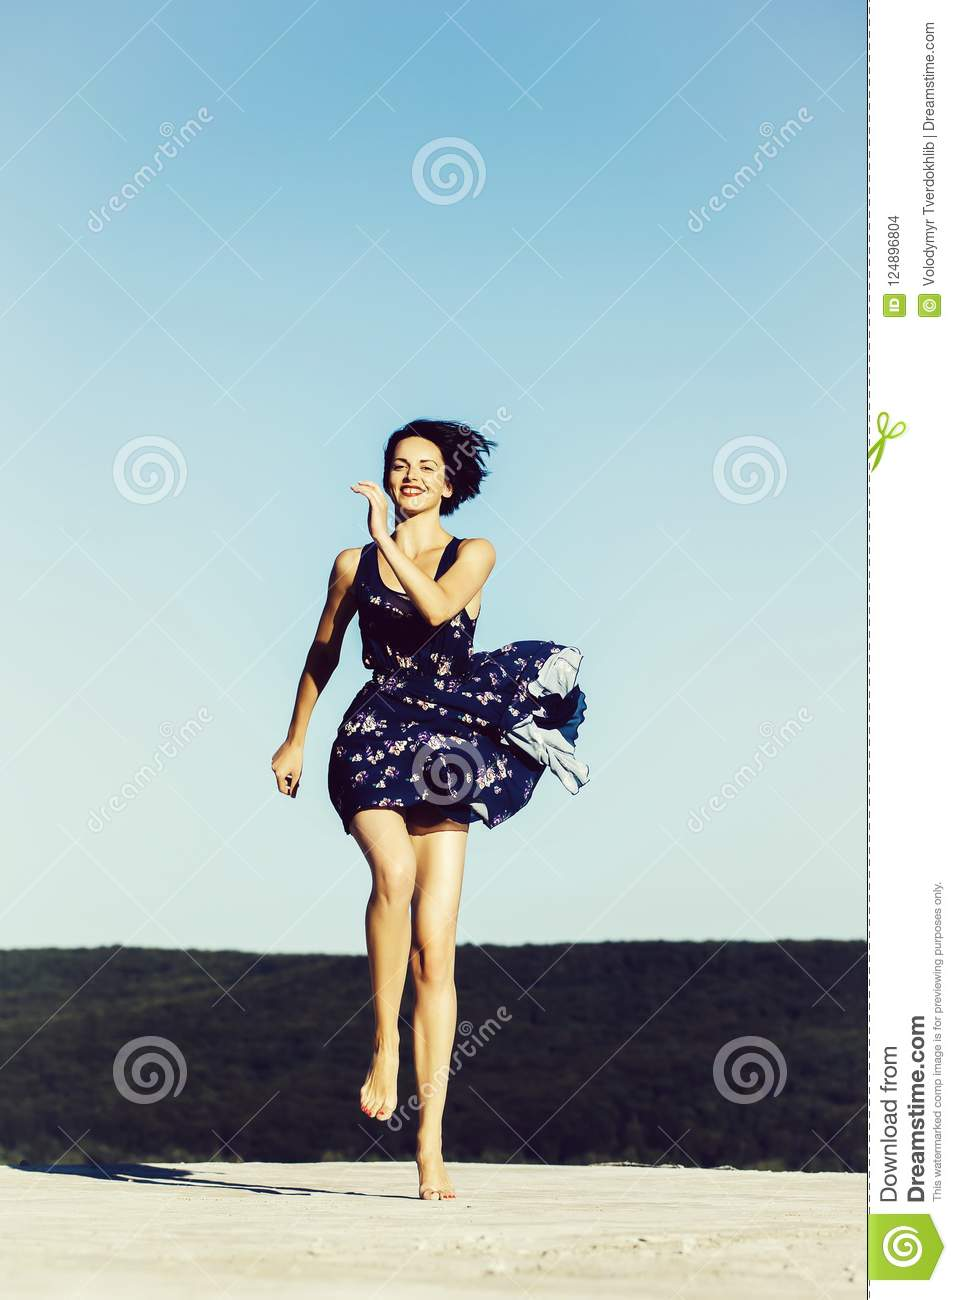 47a827142a9b6 Pretty girl young beautiful woman brunette slim model with bare feet in  blue dress jumps on sky background